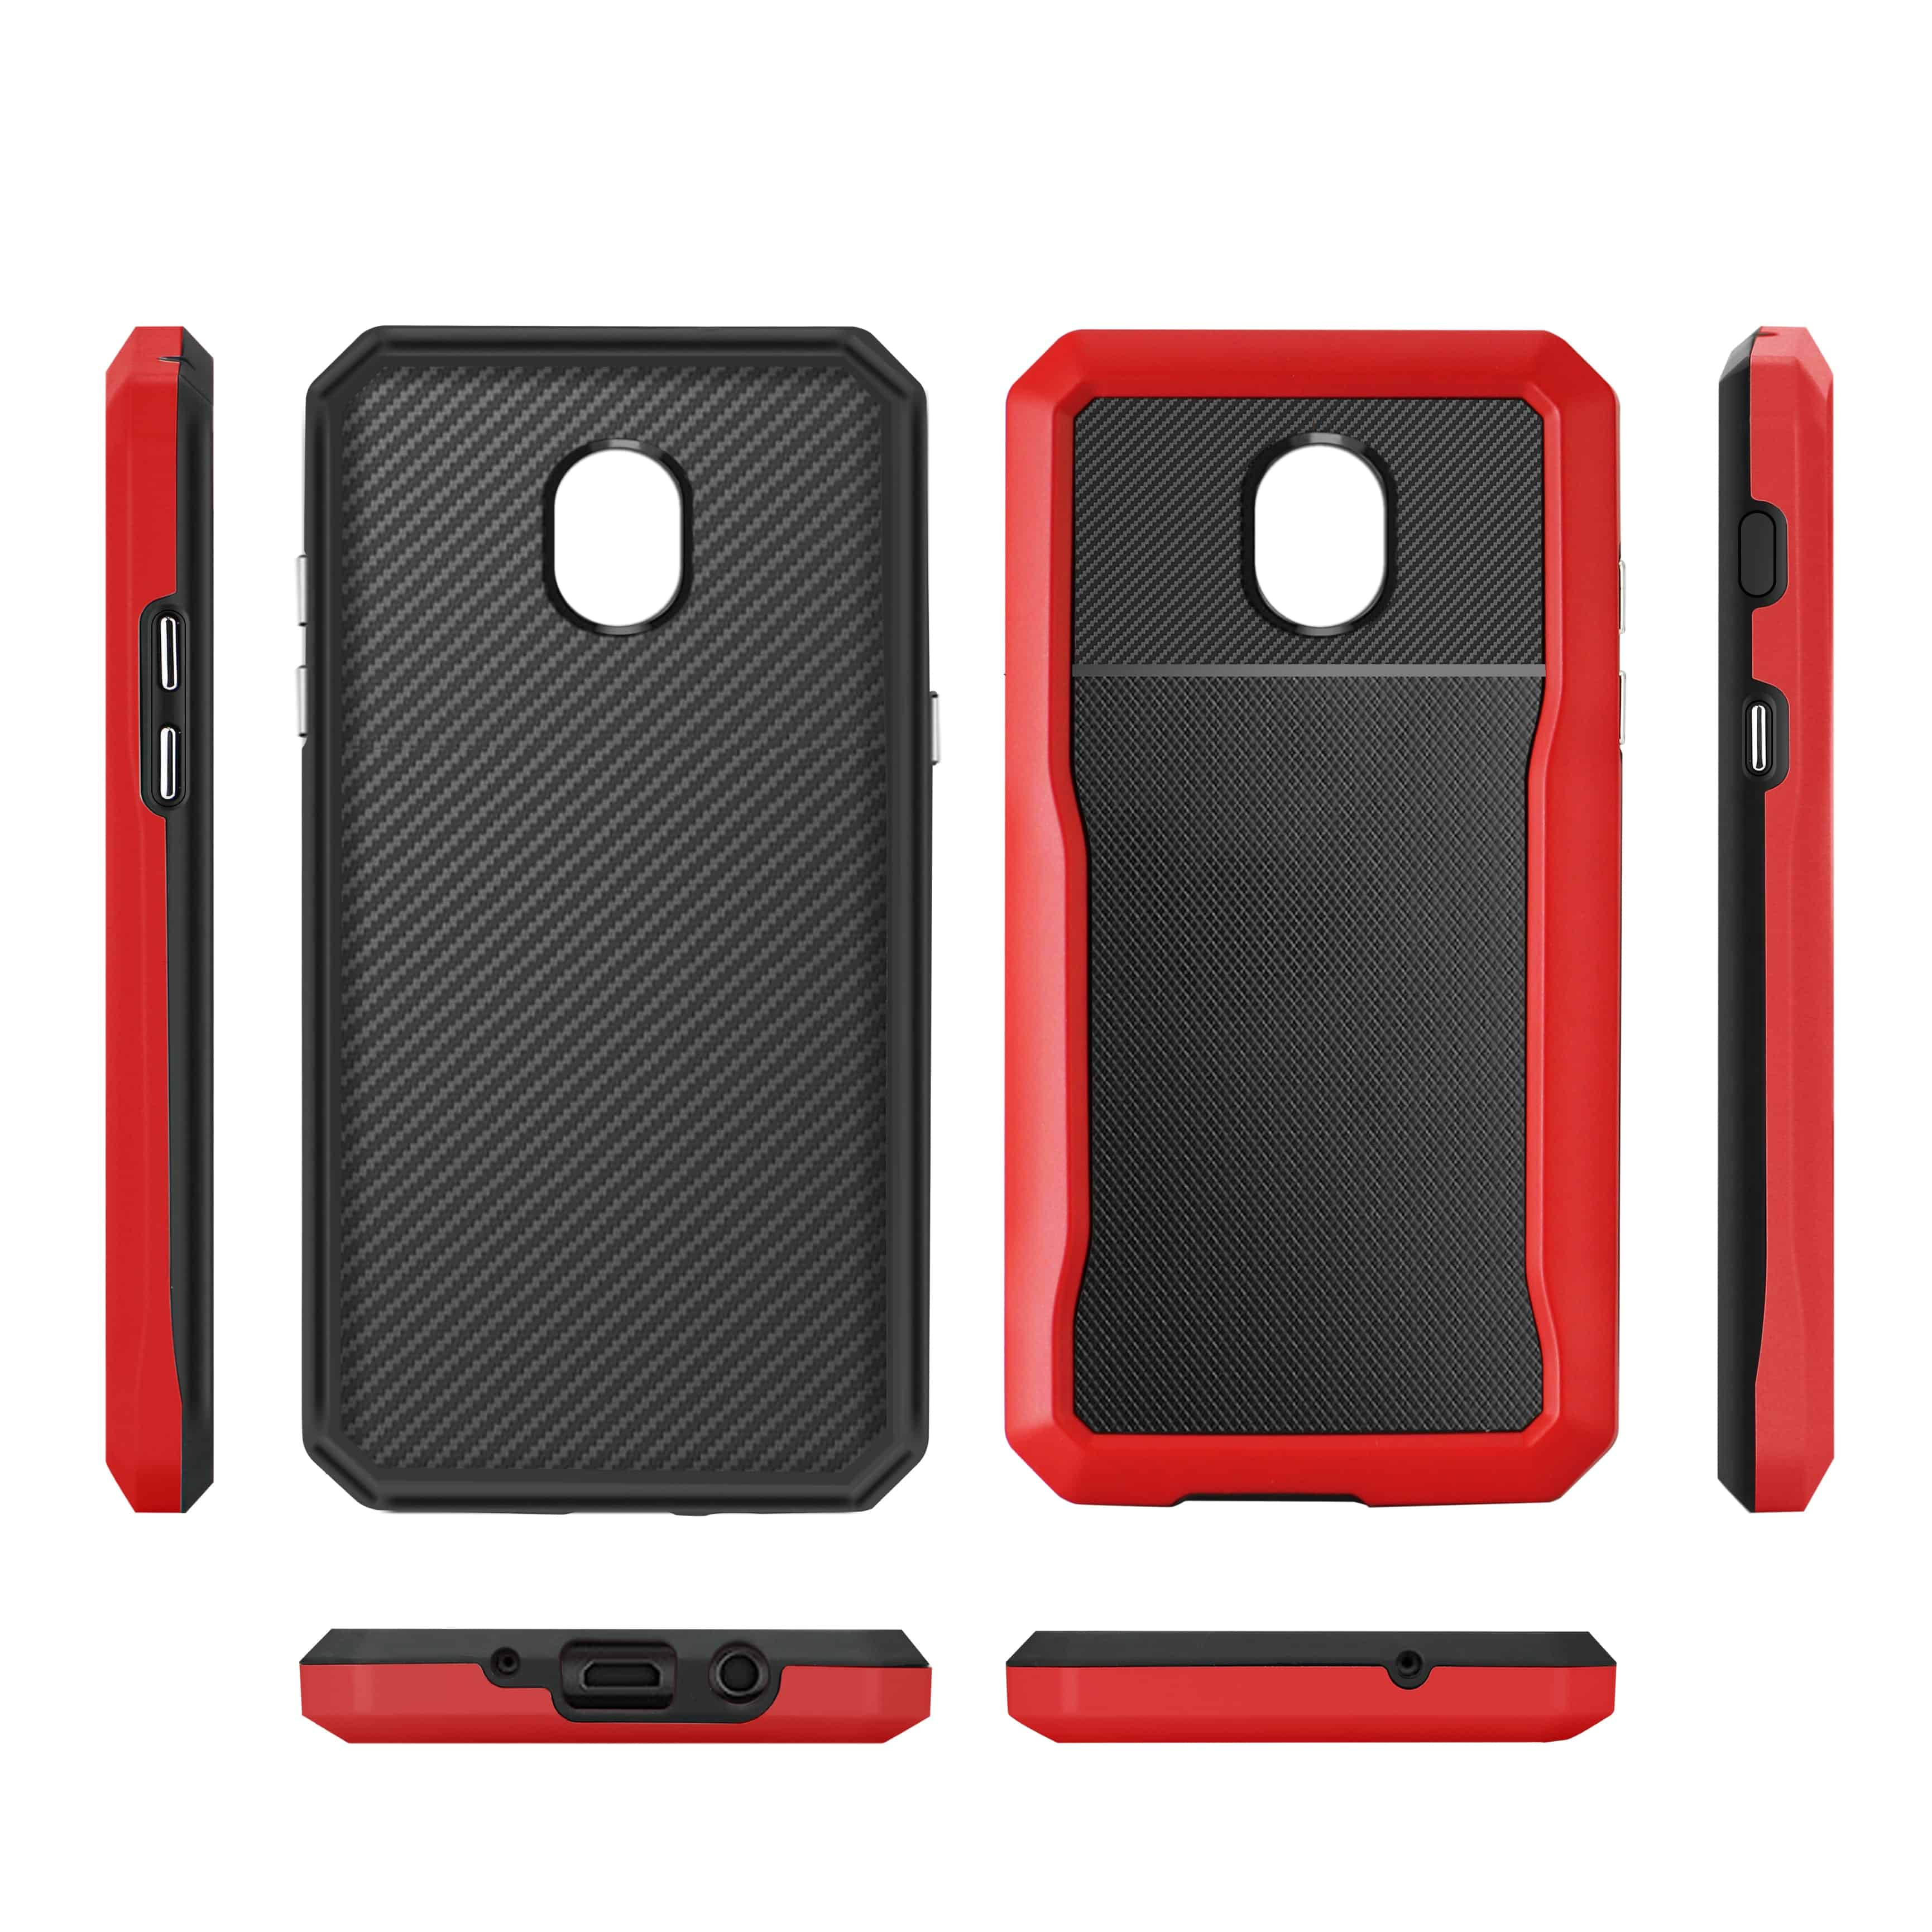 SAMSUNG GALAXY J3 (2018) Full Coverage Shockproof Case In Red